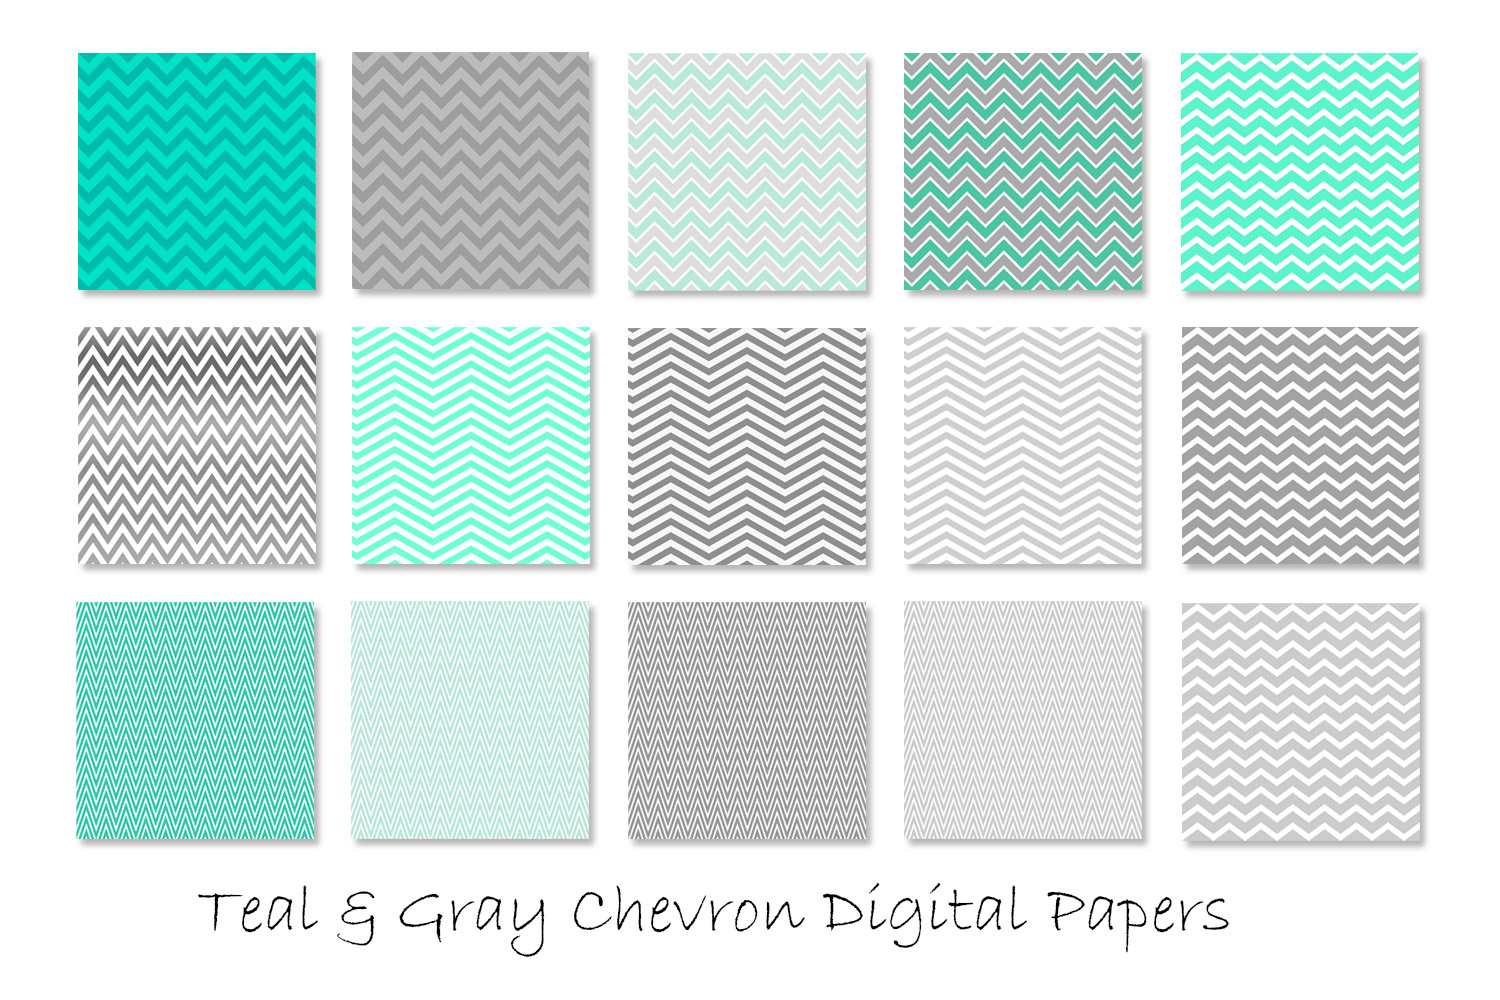 Teal & Gray Chevron Patterns example image 2